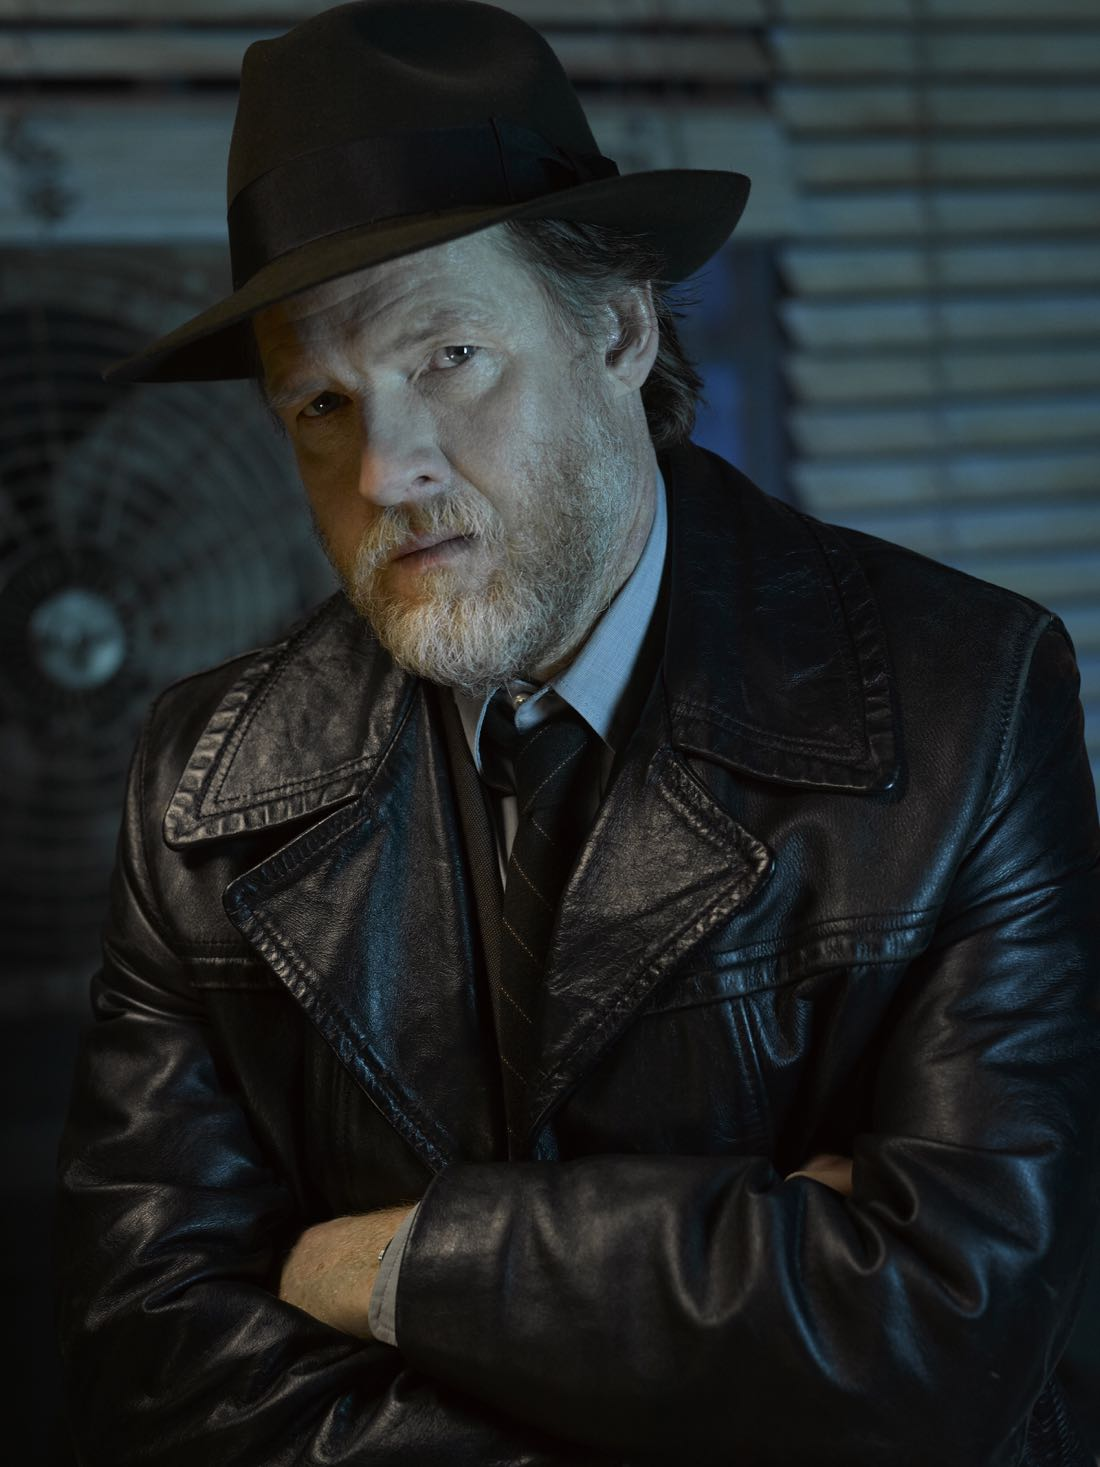 GOTHAM: Donal Logue. Season 3 of GOTHAM premieres Monday, Sept. 19 (8:00-9:00 PM ET/PT) on FOX. ©2016 Fox Broadcasting Co. Cr: Mark Seliger/FOX